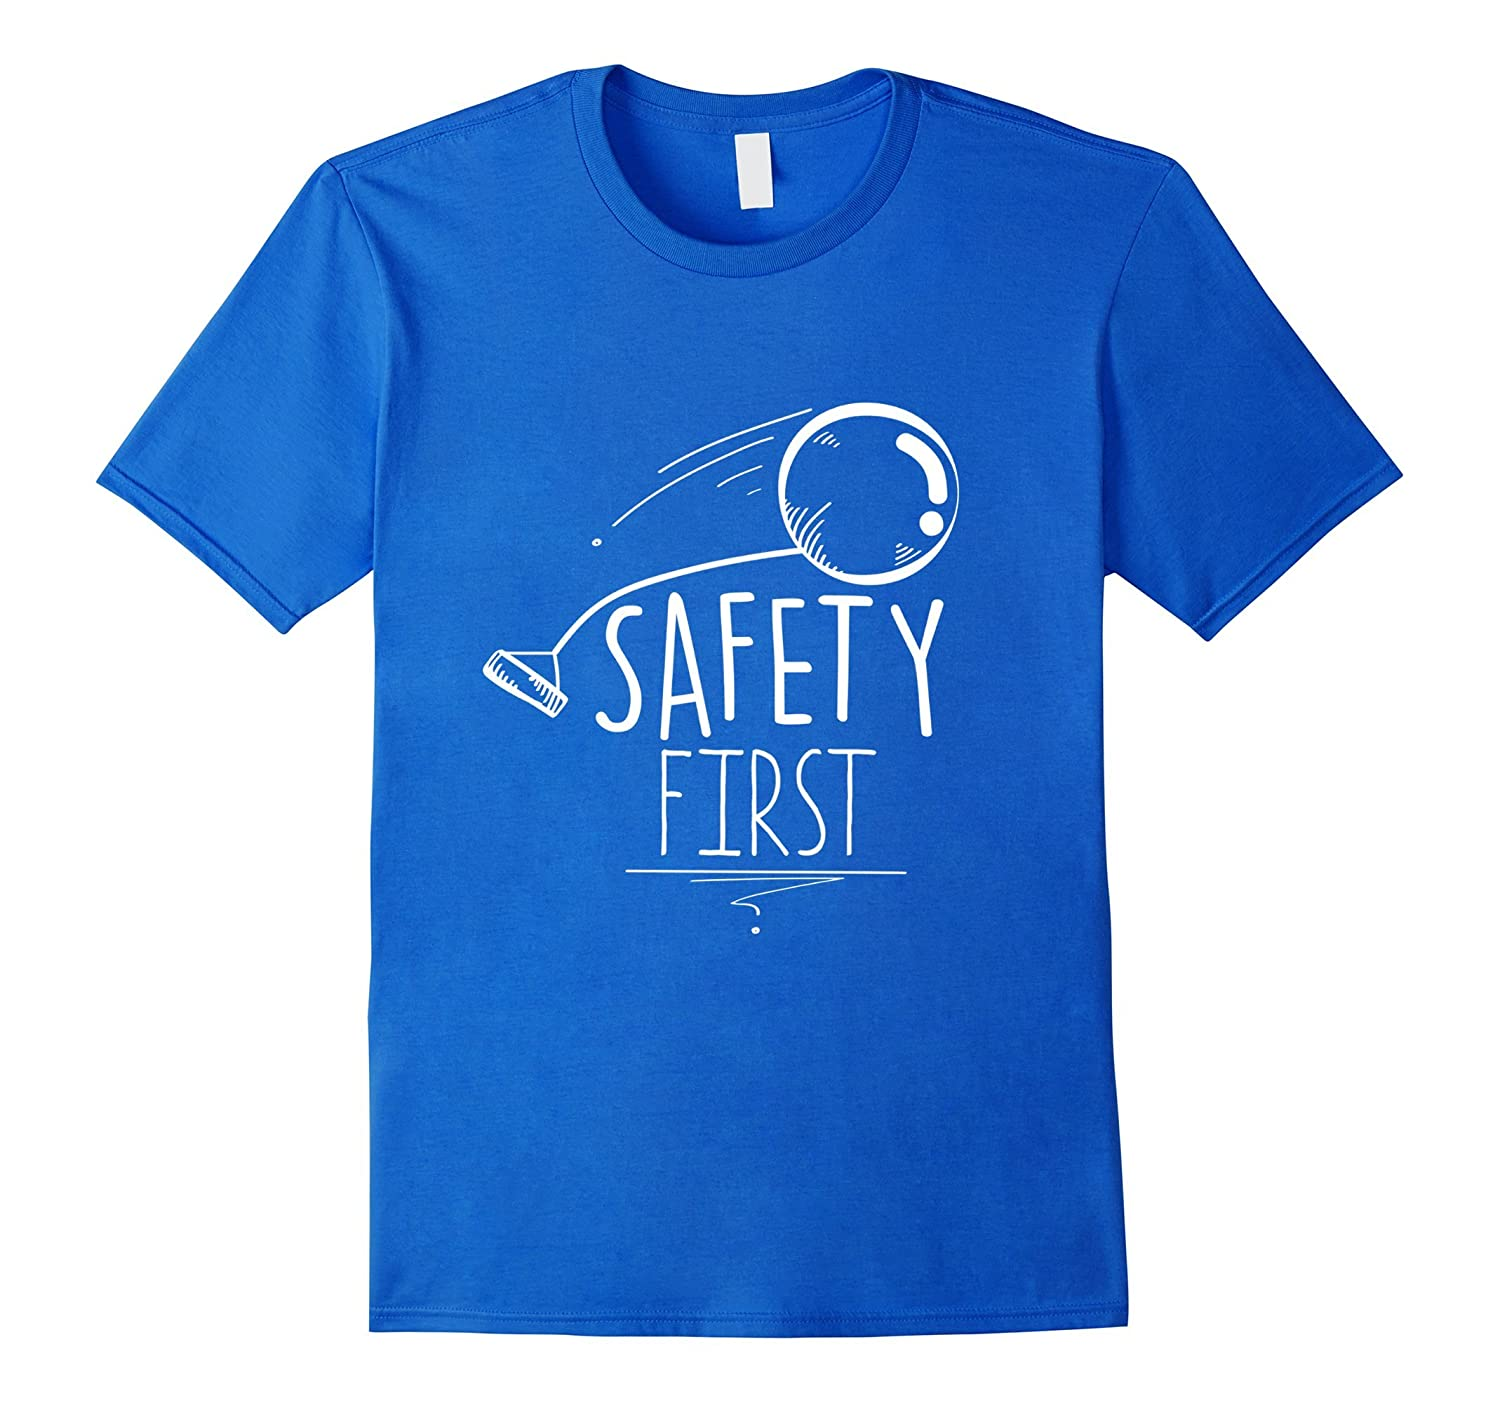 Safety First T Shirt Funny Hammer Throw Accident Design